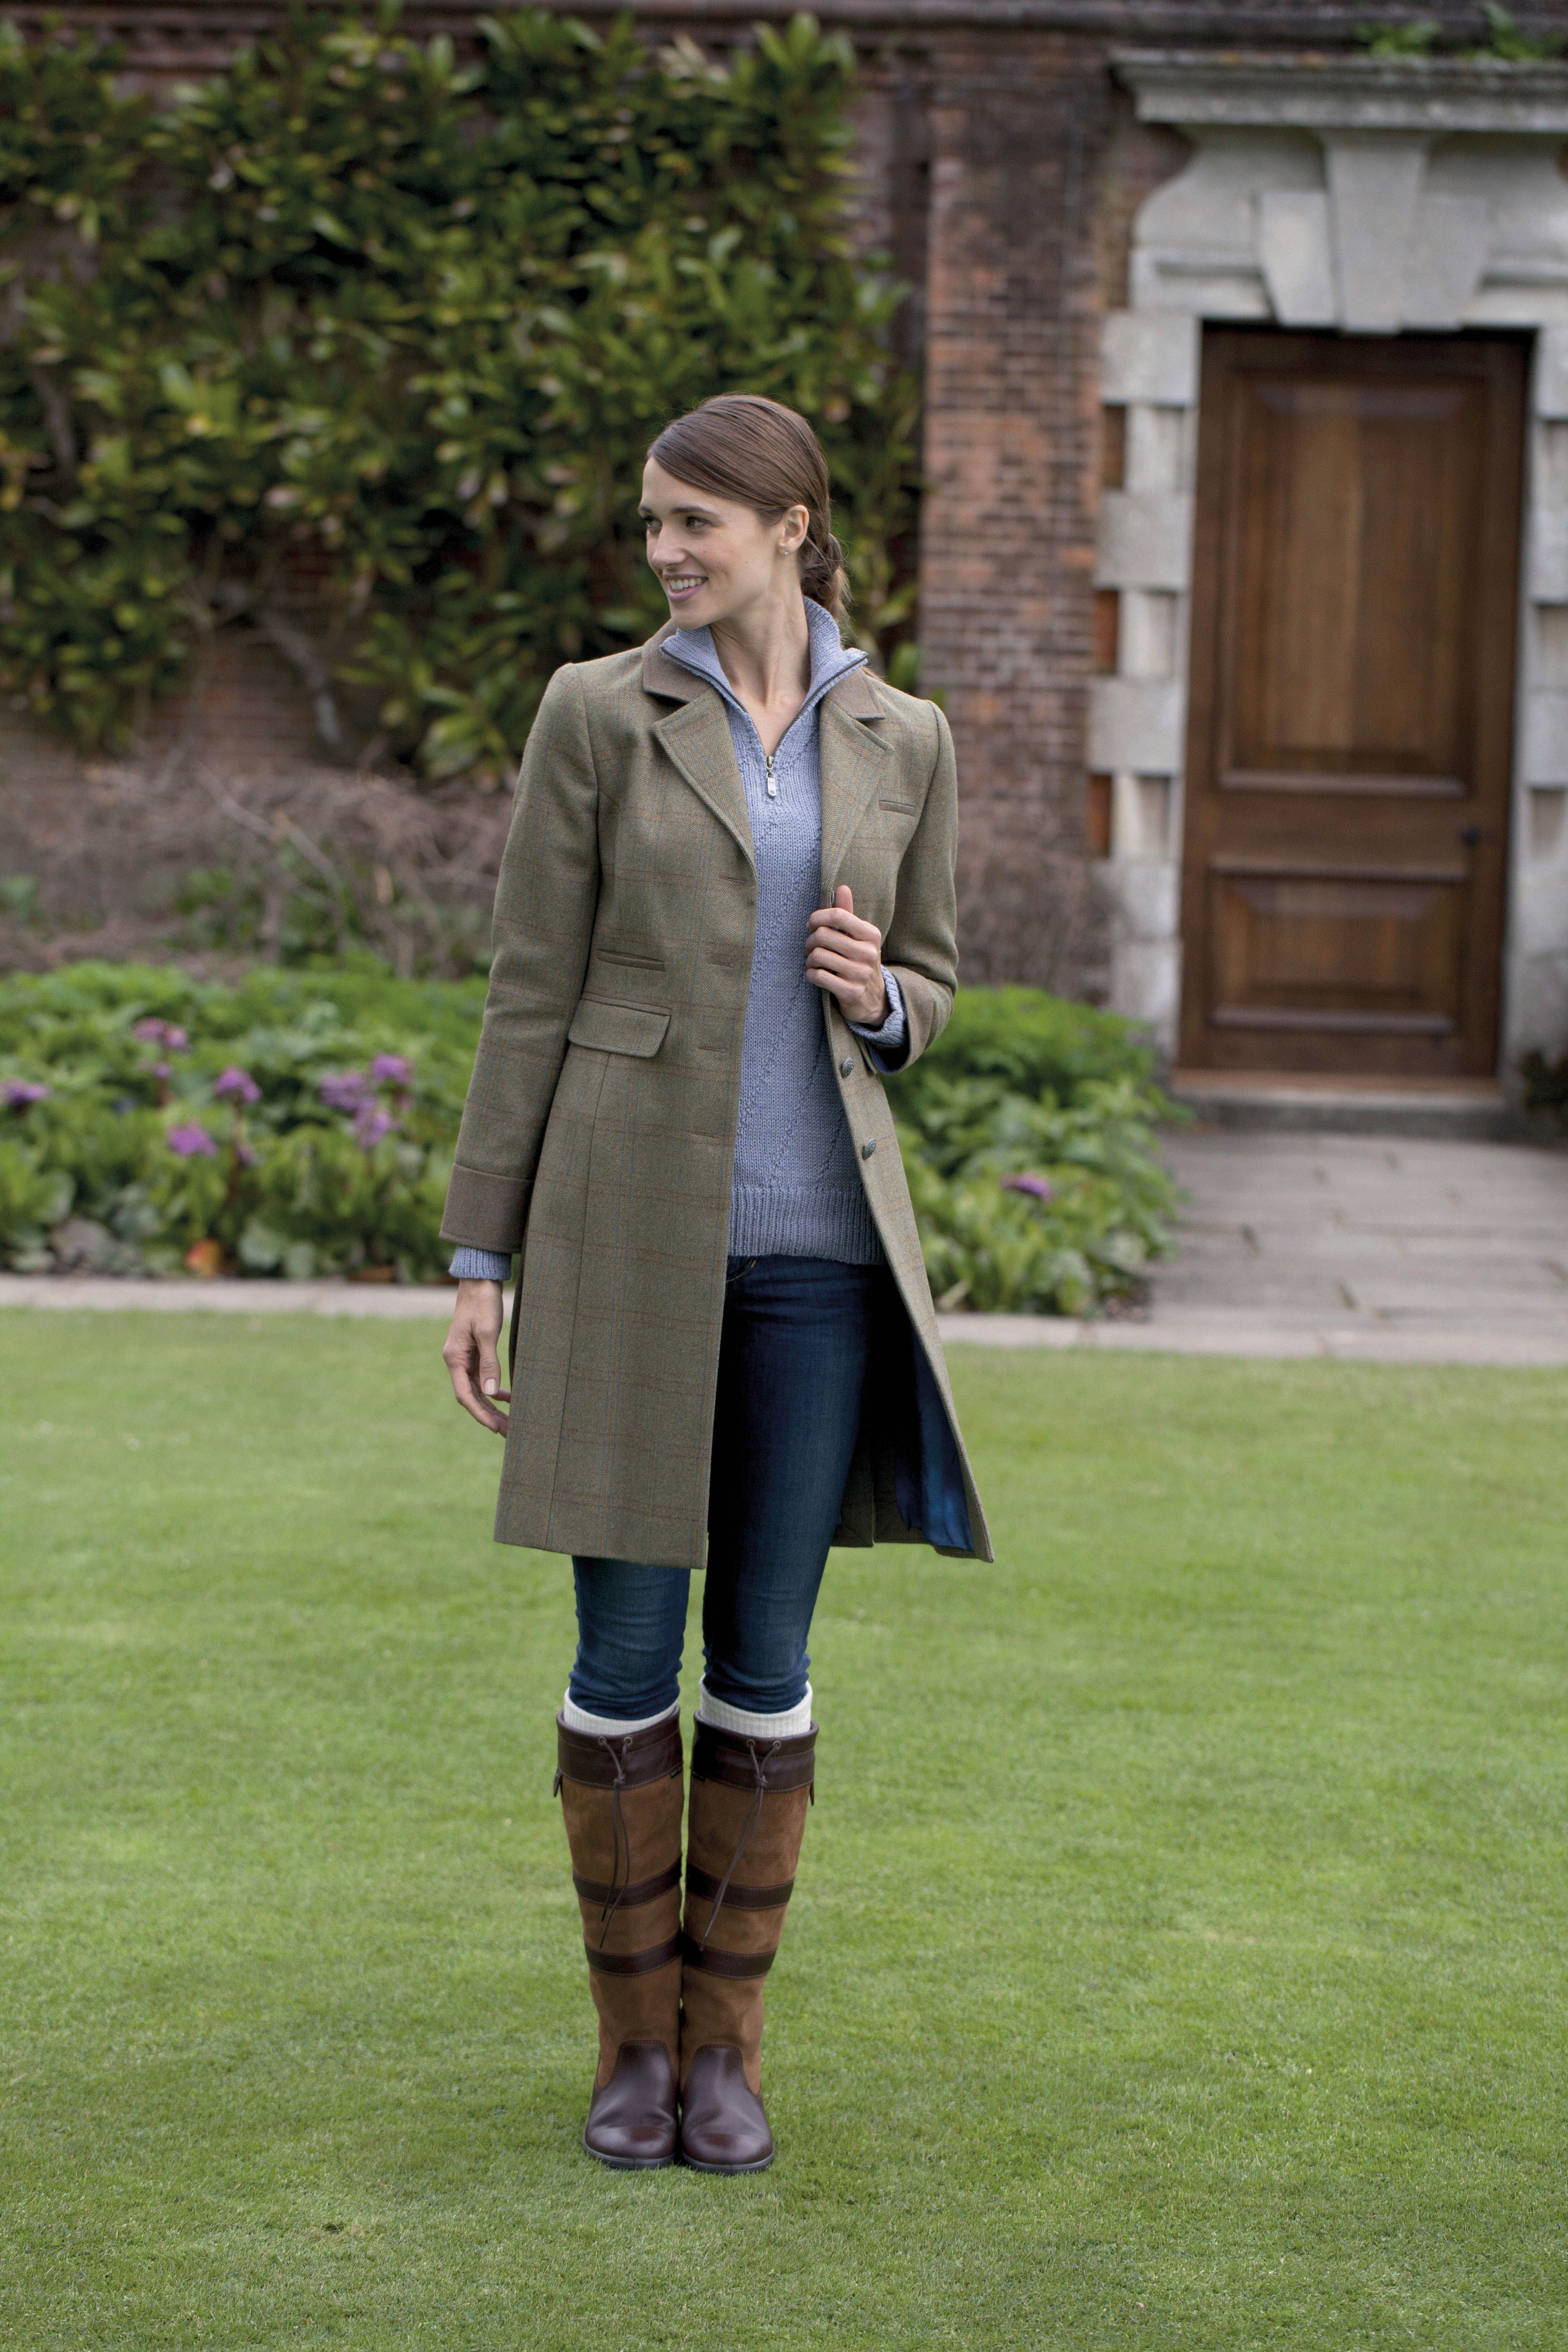 Shop Dubarry At Country House Outdoor Www Countryhouseoutdoor Co Uk Fashion English Country Fashion Country Fashion